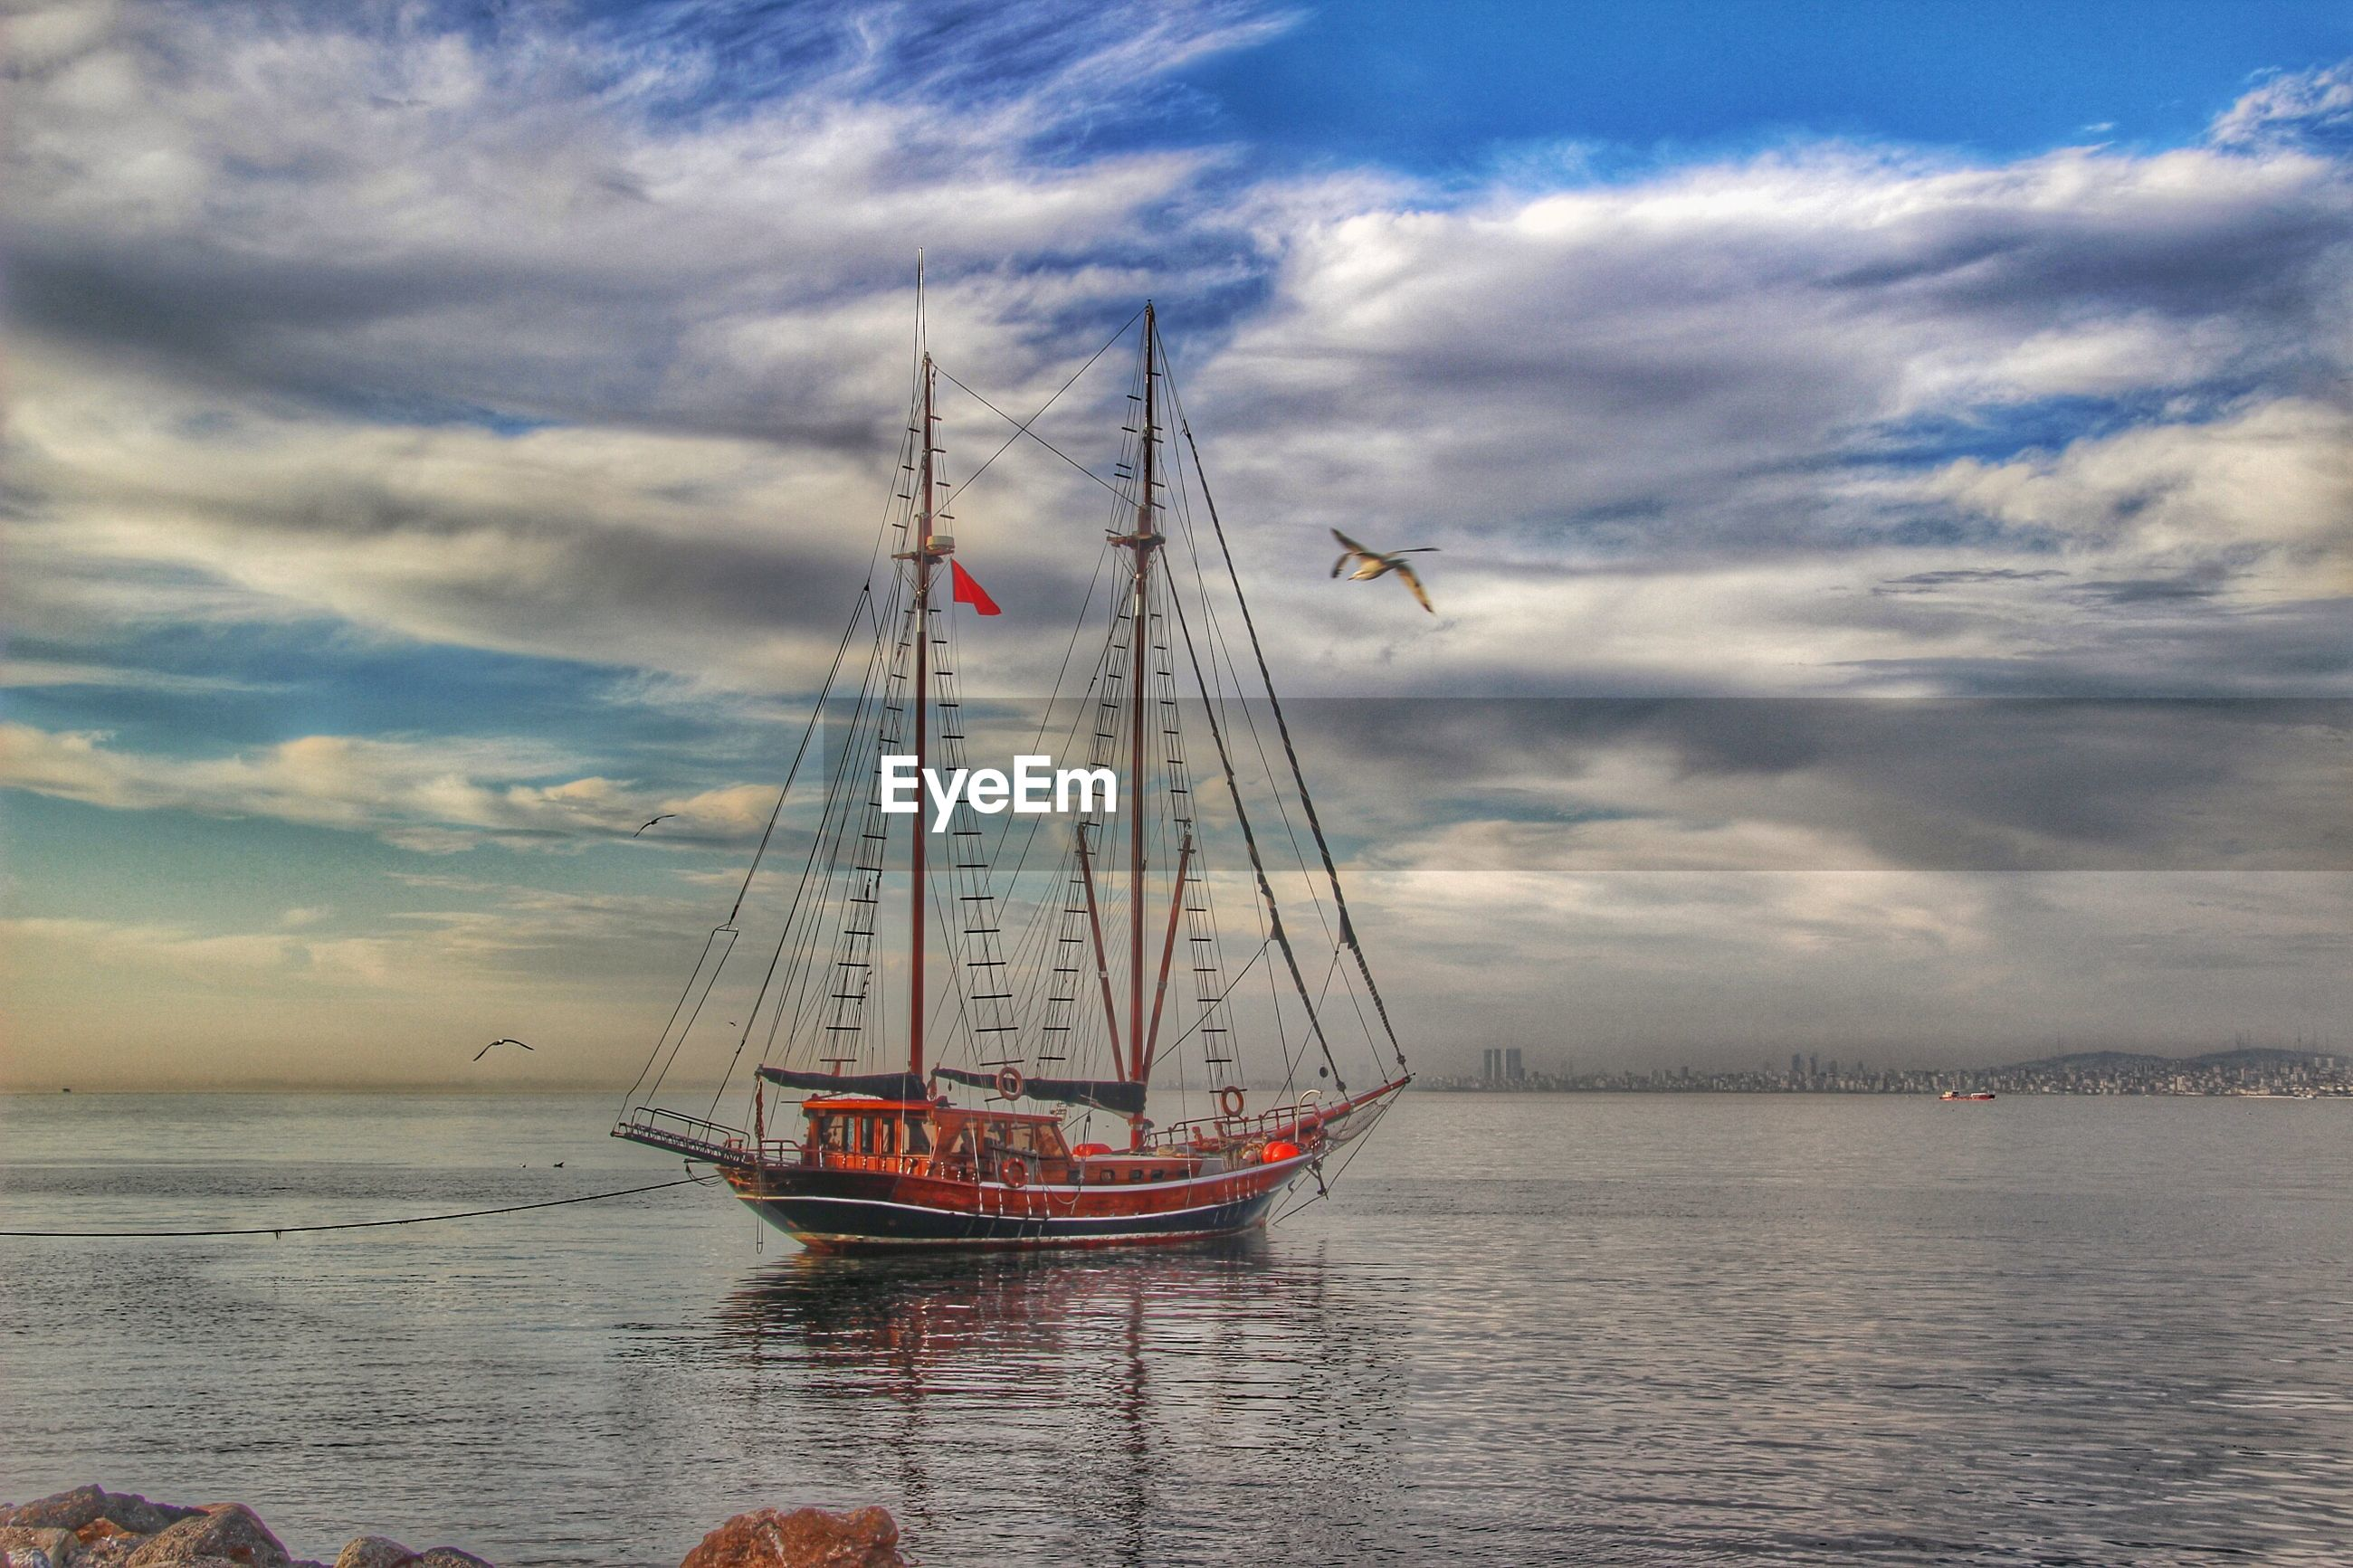 sea, sky, water, nautical vessel, transportation, cloud - sky, mast, mode of transport, cloudy, sailboat, boat, waterfront, horizon over water, cloud, nature, harbor, outdoors, travel, scenics, tranquility